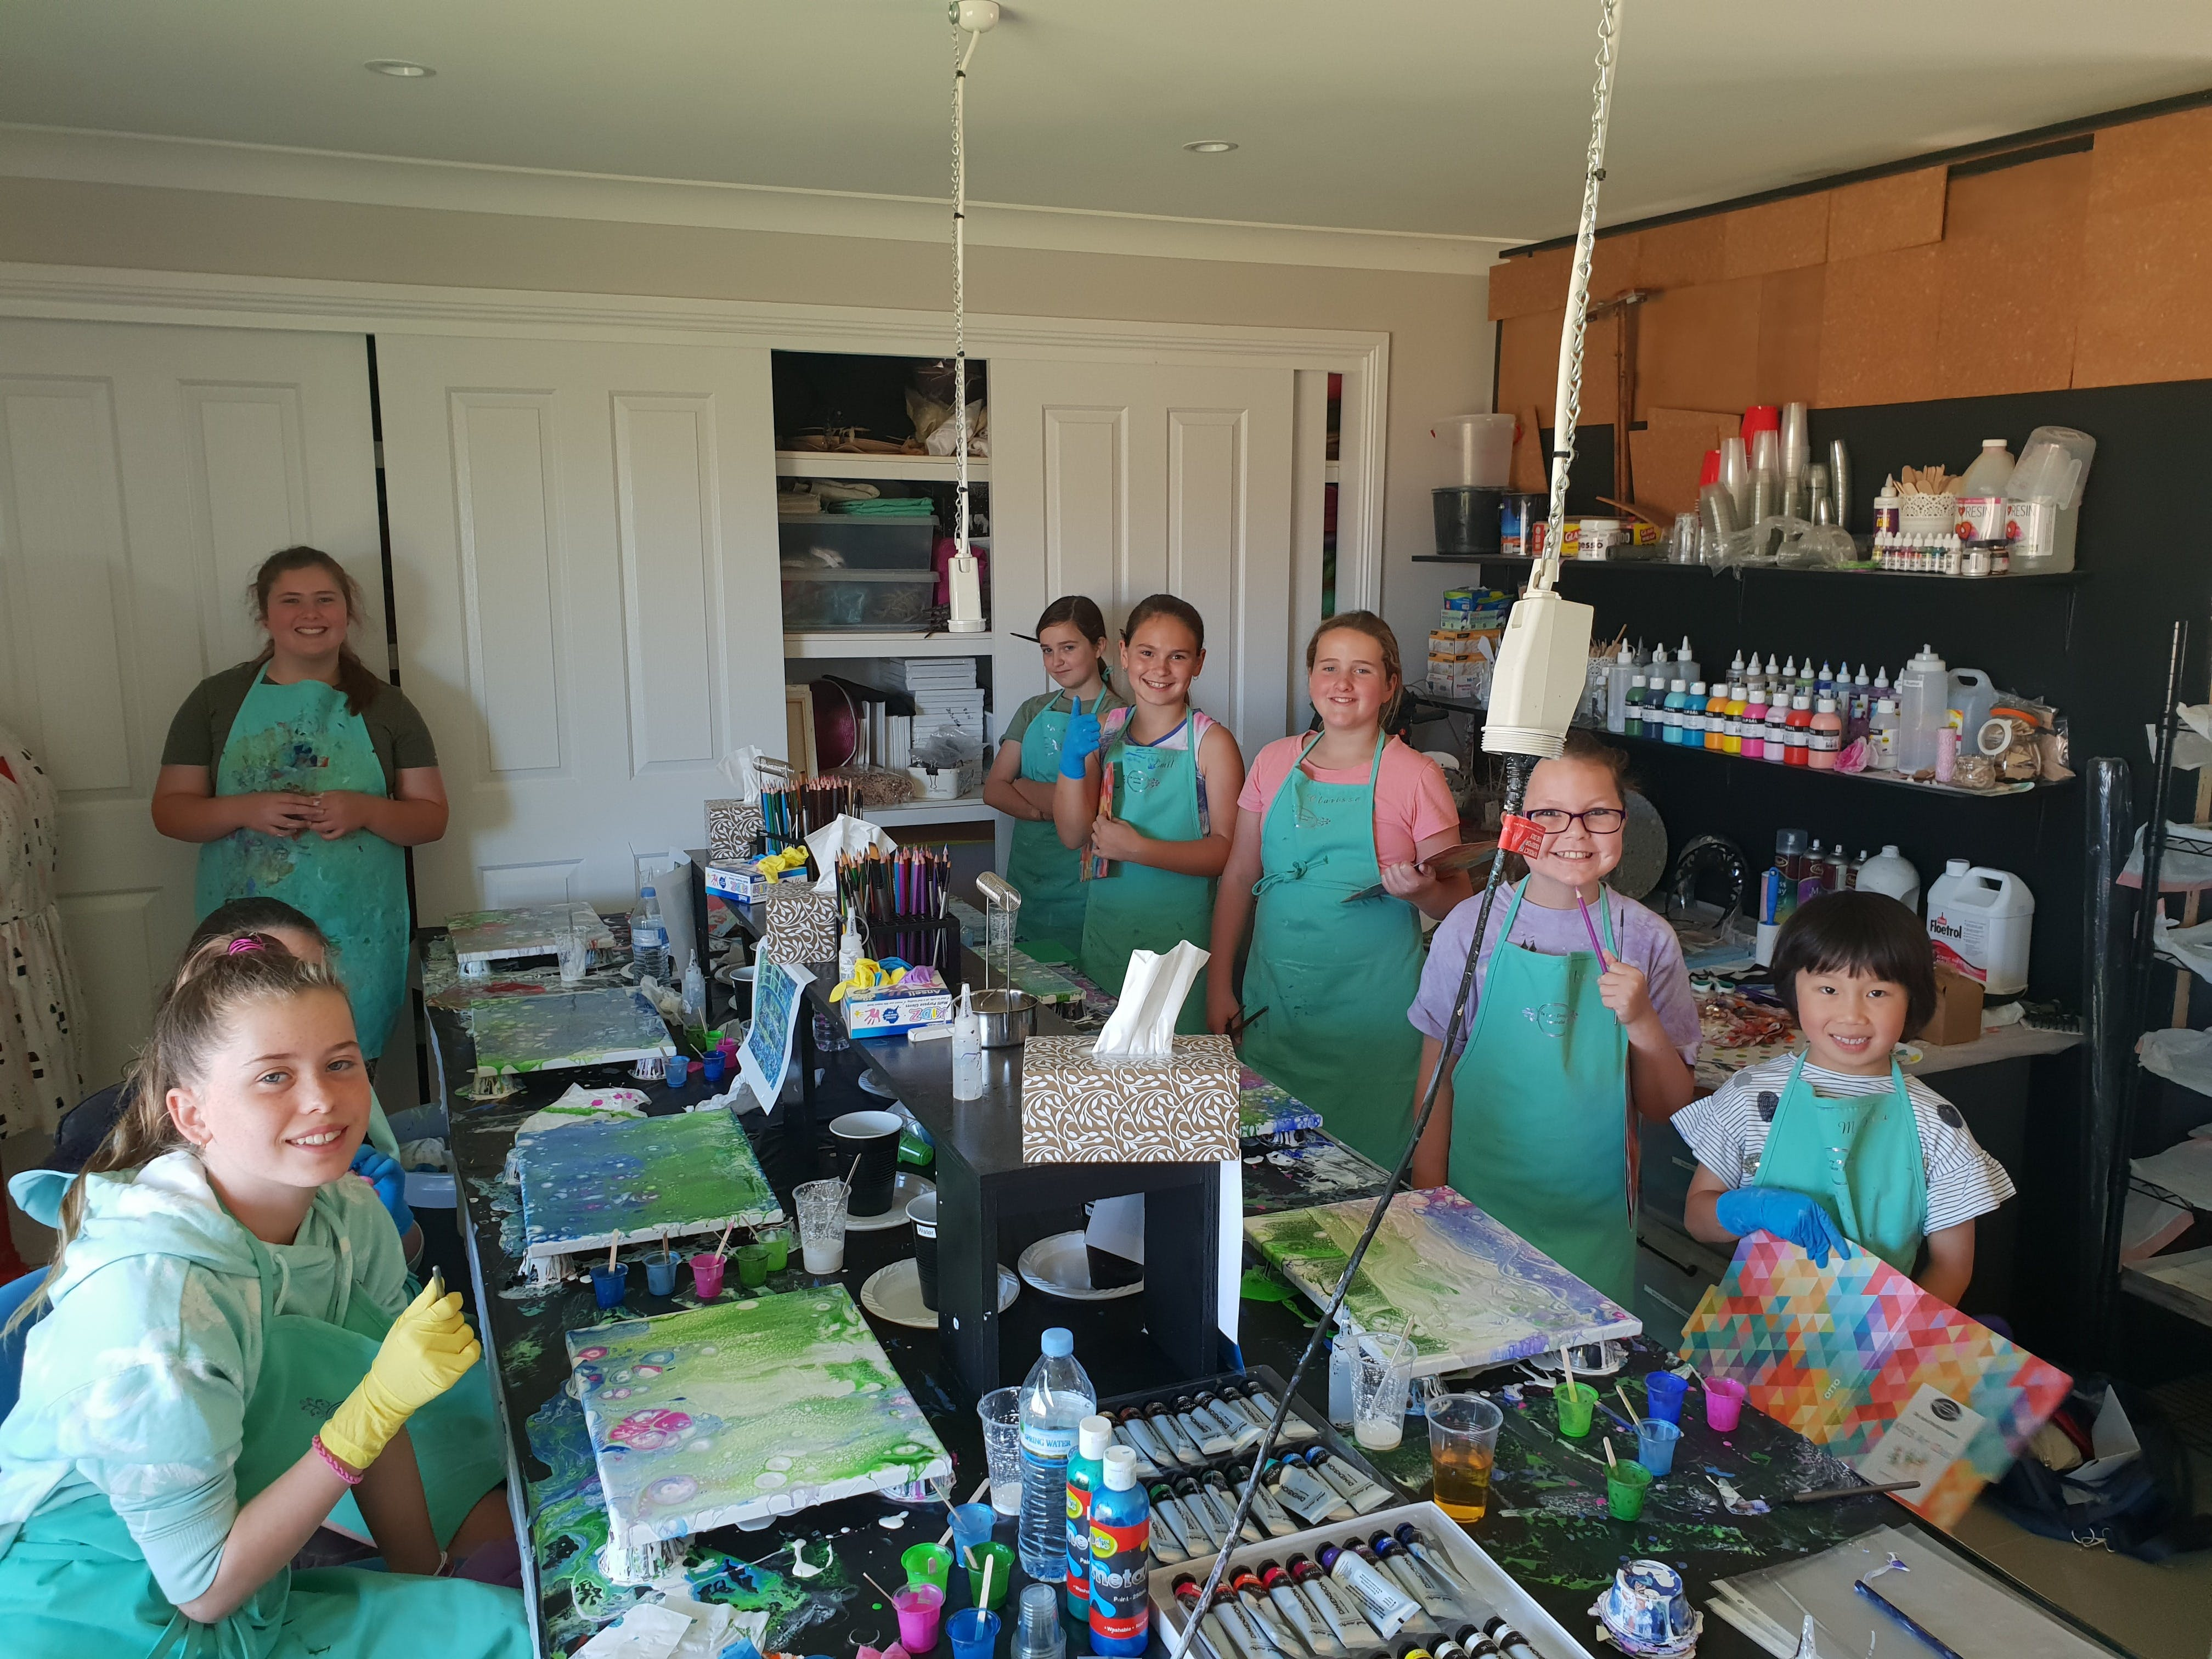 School holidays - Kids art class - Painting - Accommodation Great Ocean Road